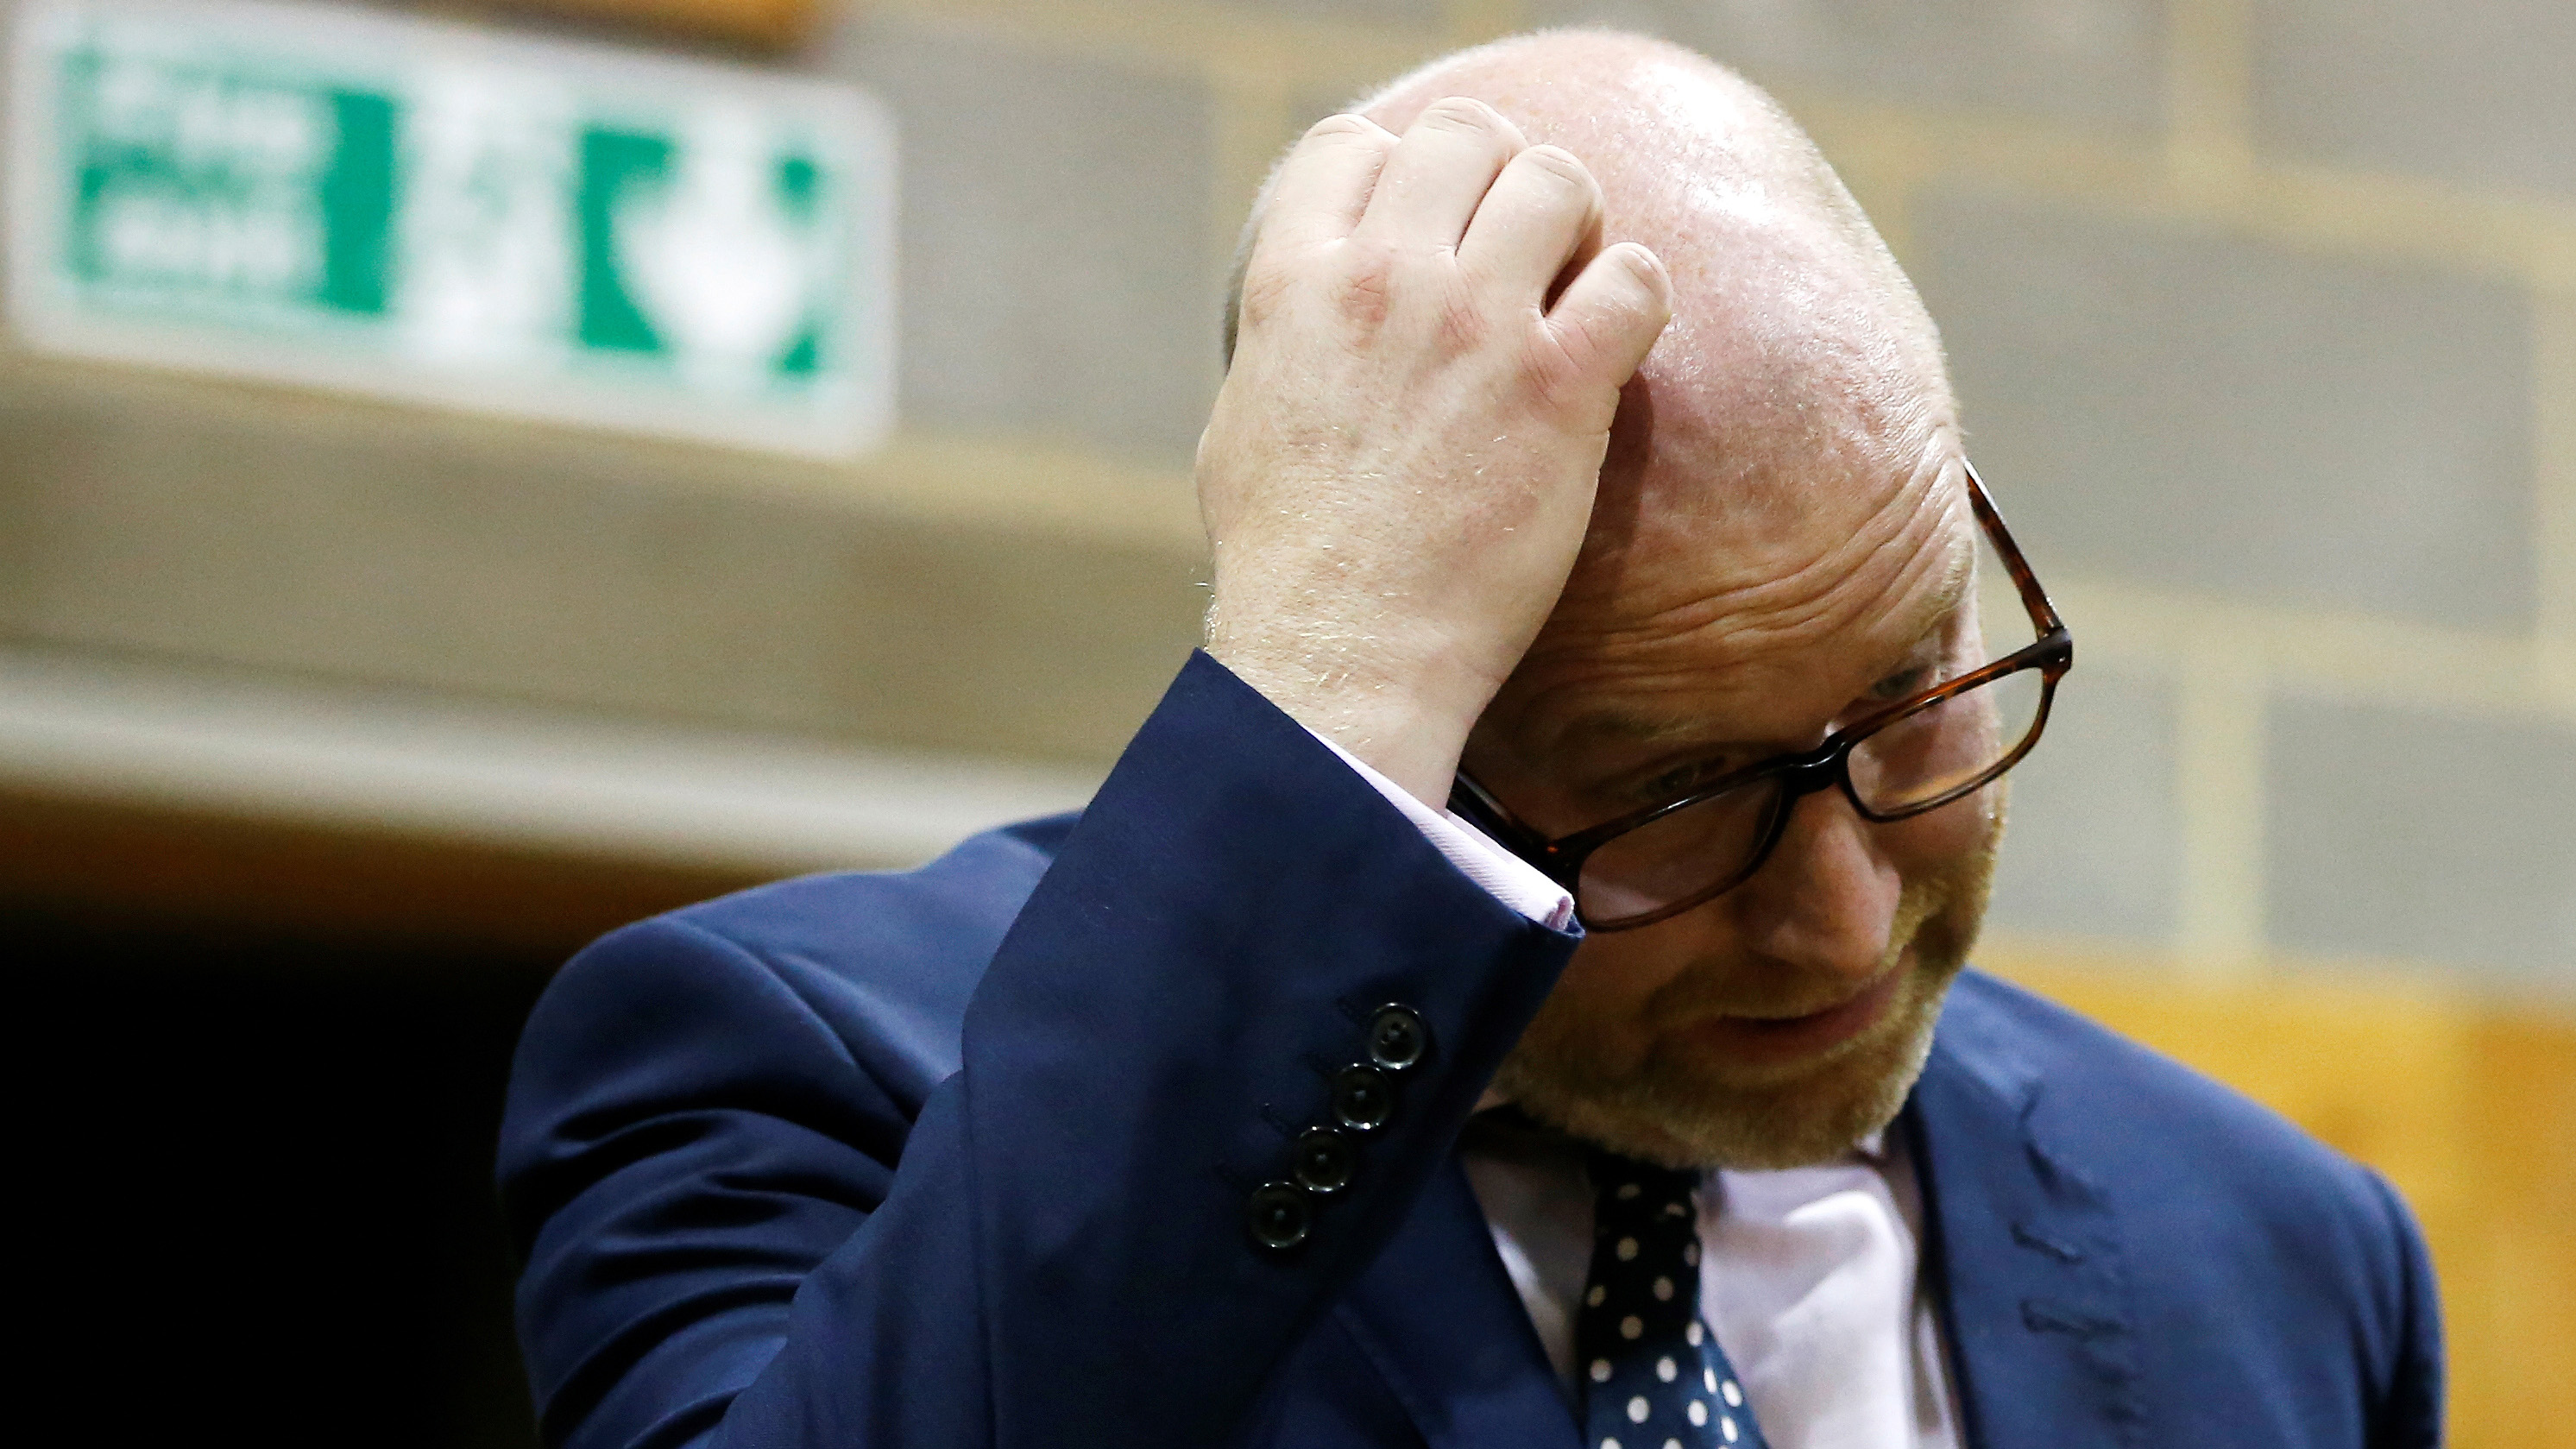 Paul Nuttal, leader of the United Kingdom Independence Party reacts after failing to win the seat of Boston and Skegness at the counting centre for Britain's general election in Boston, June 9, 2017. REUTERS/Paul Childs - RTX39R1X